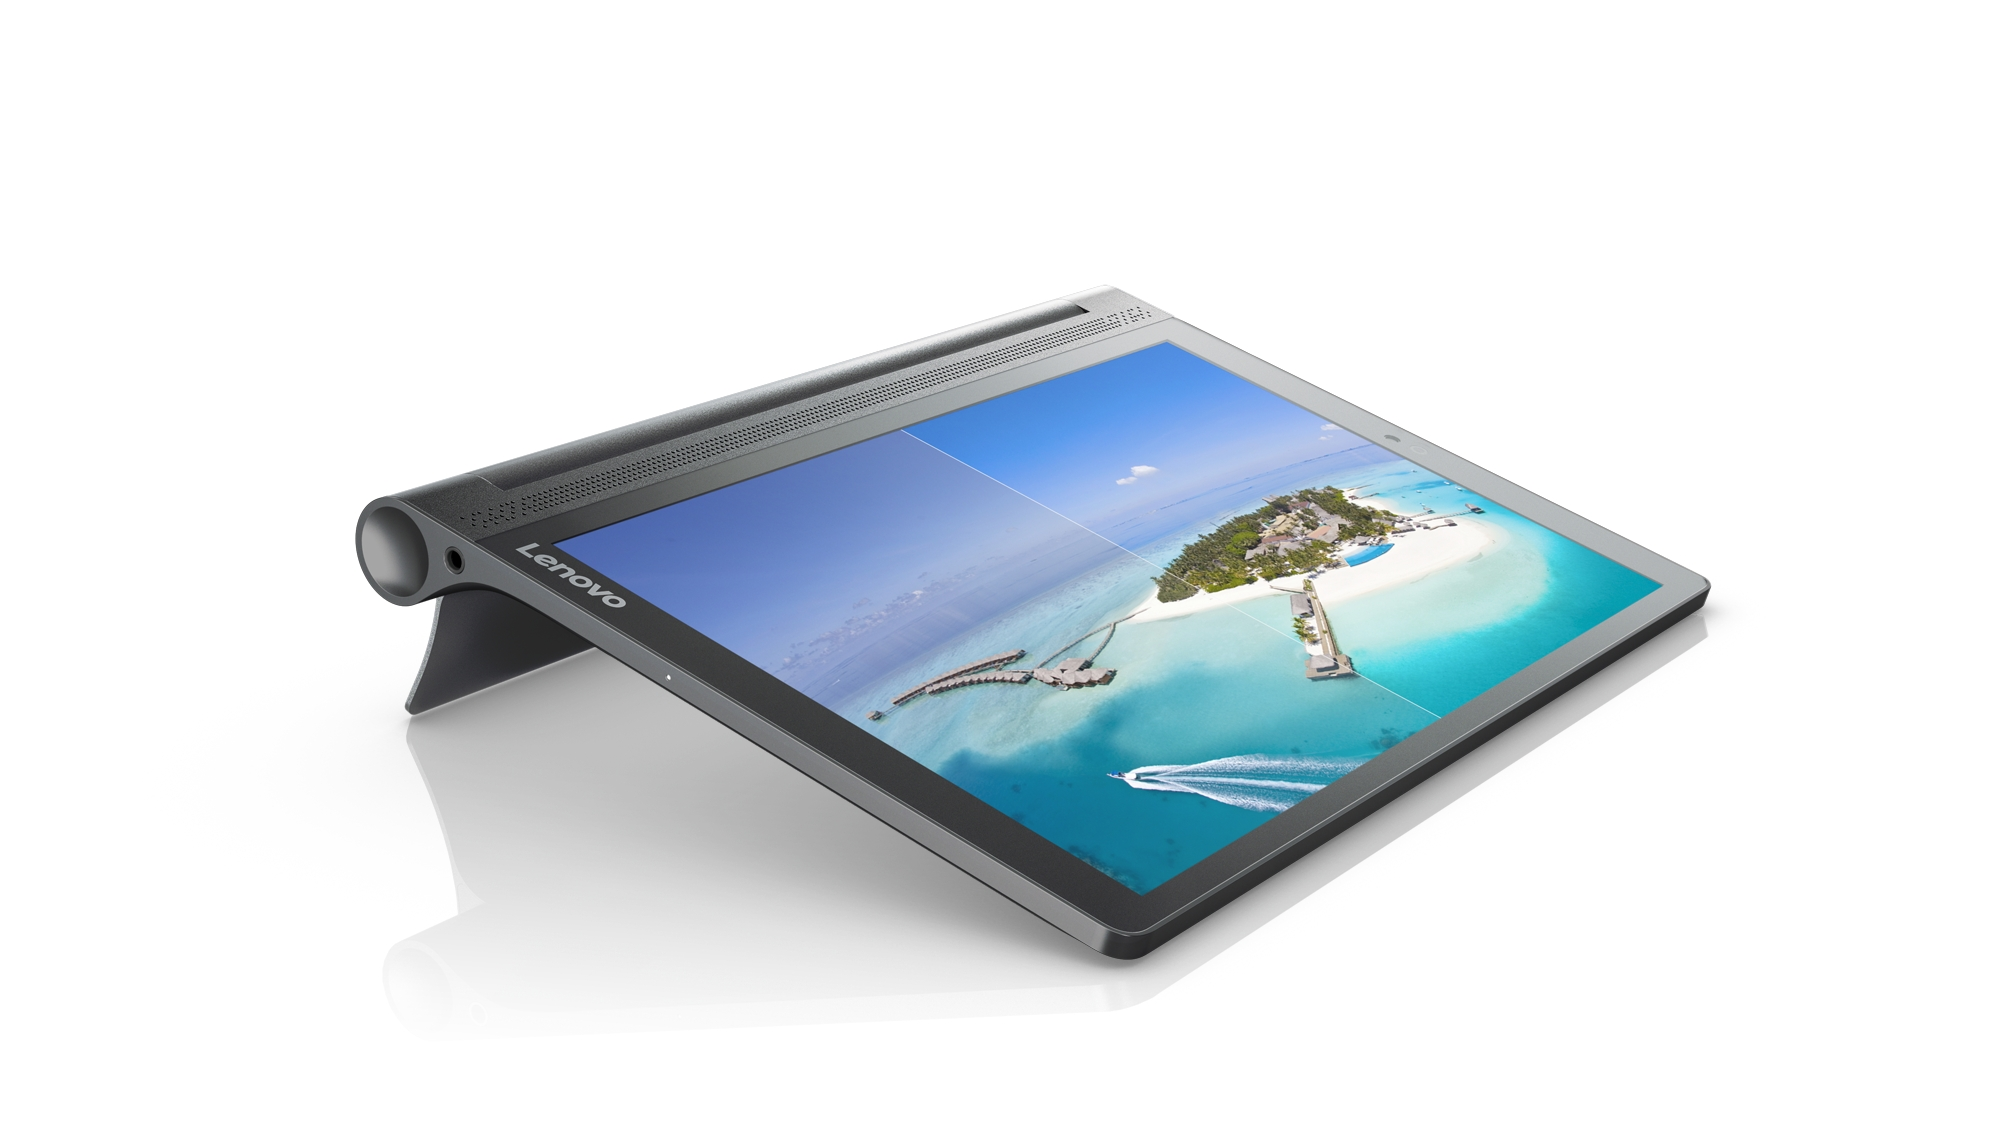 LenovoTM Pushes The Portability Envelope With Latest YogaTM Laptop And Tablet